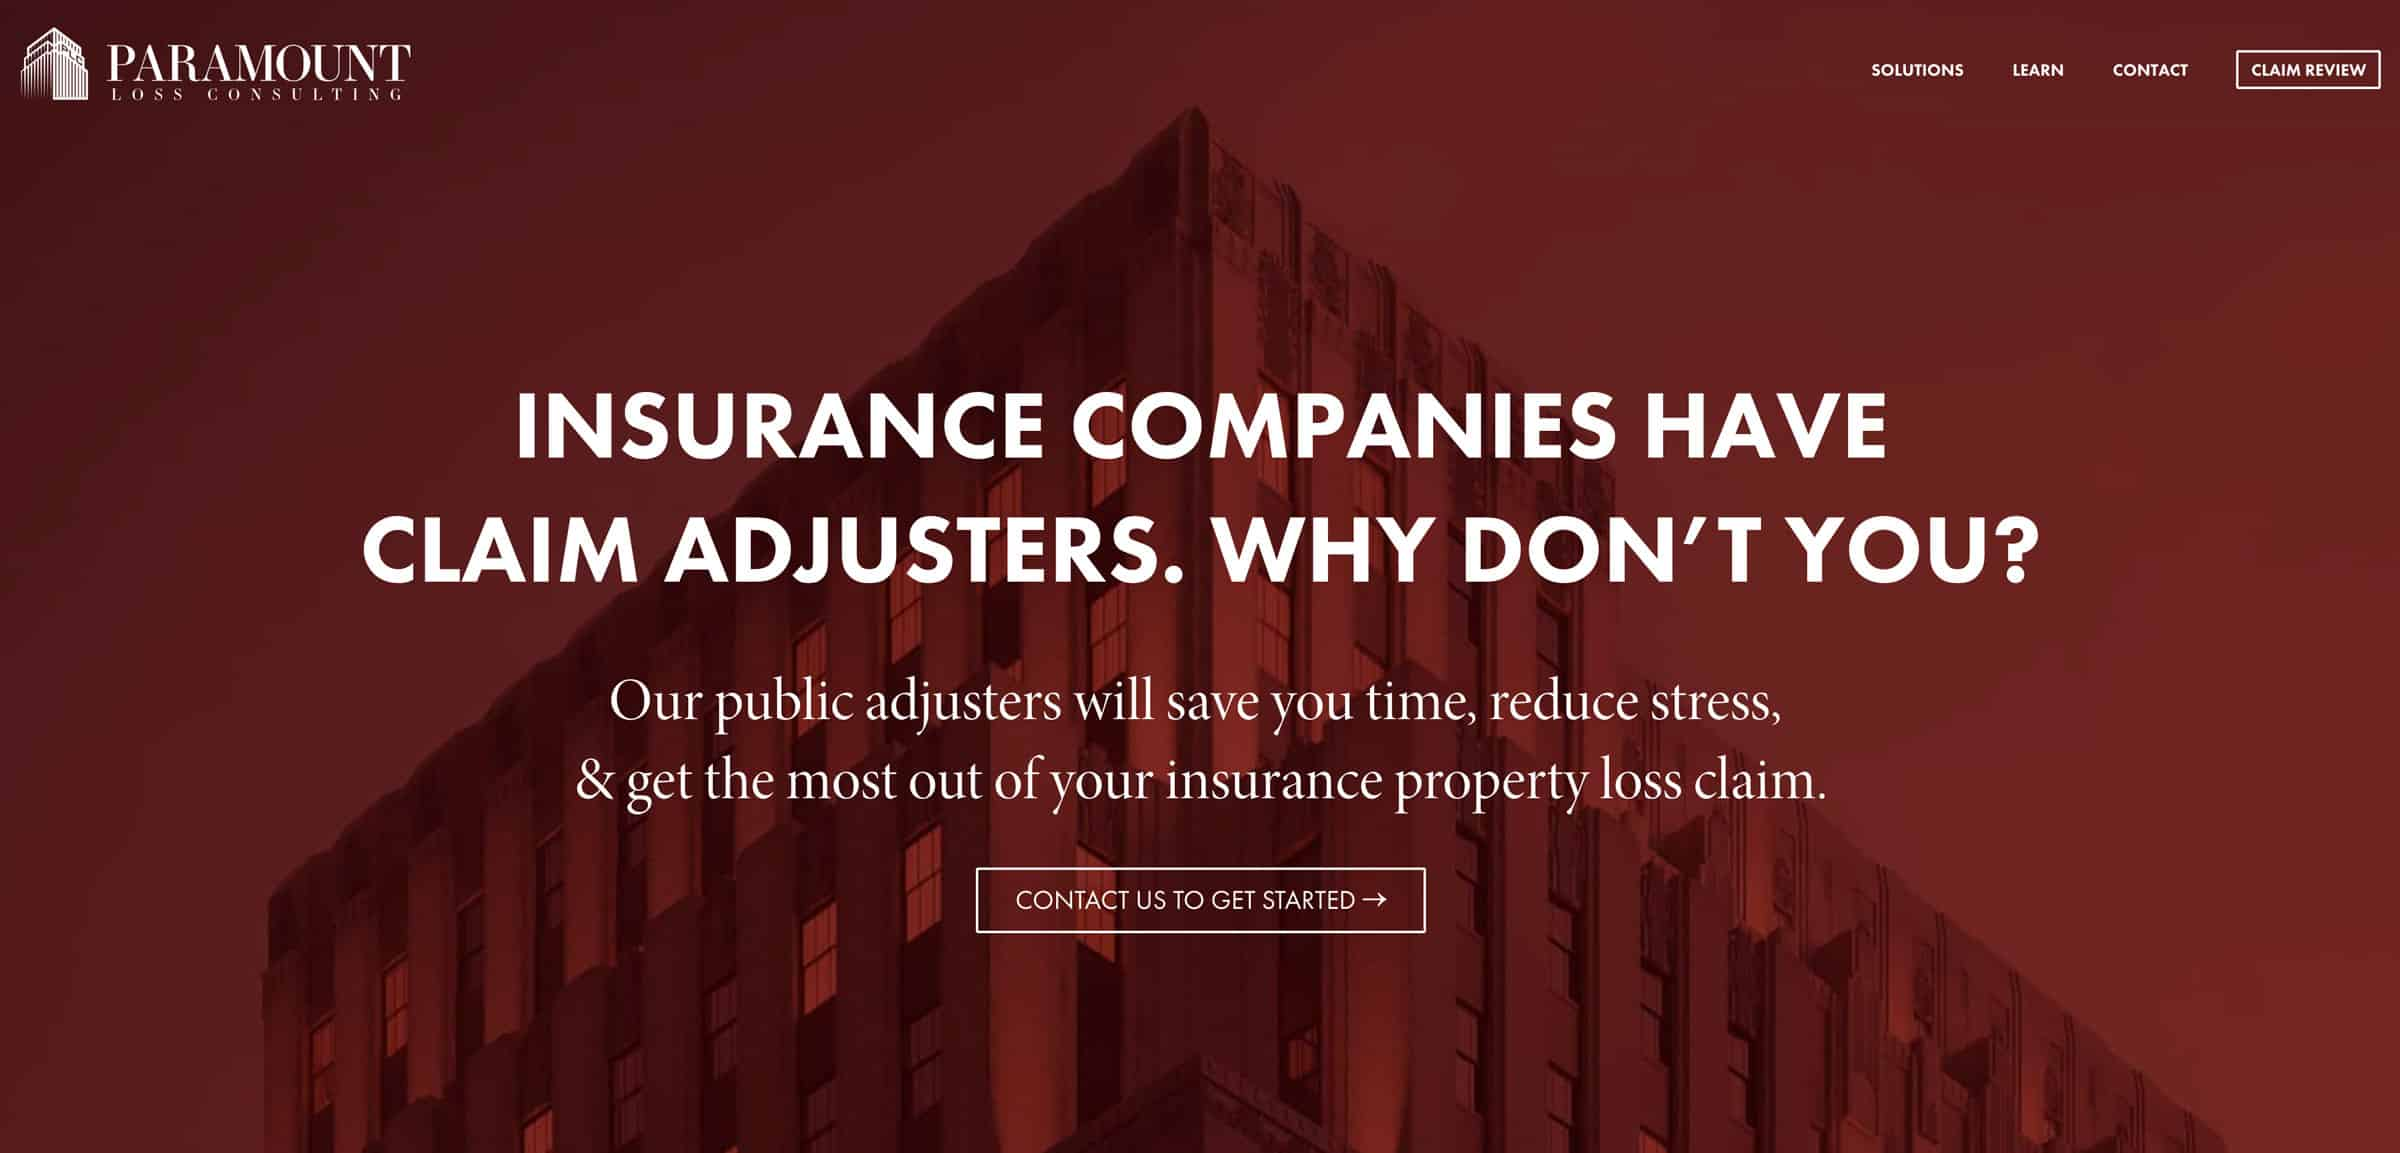 paramount loss consulting public adjuster